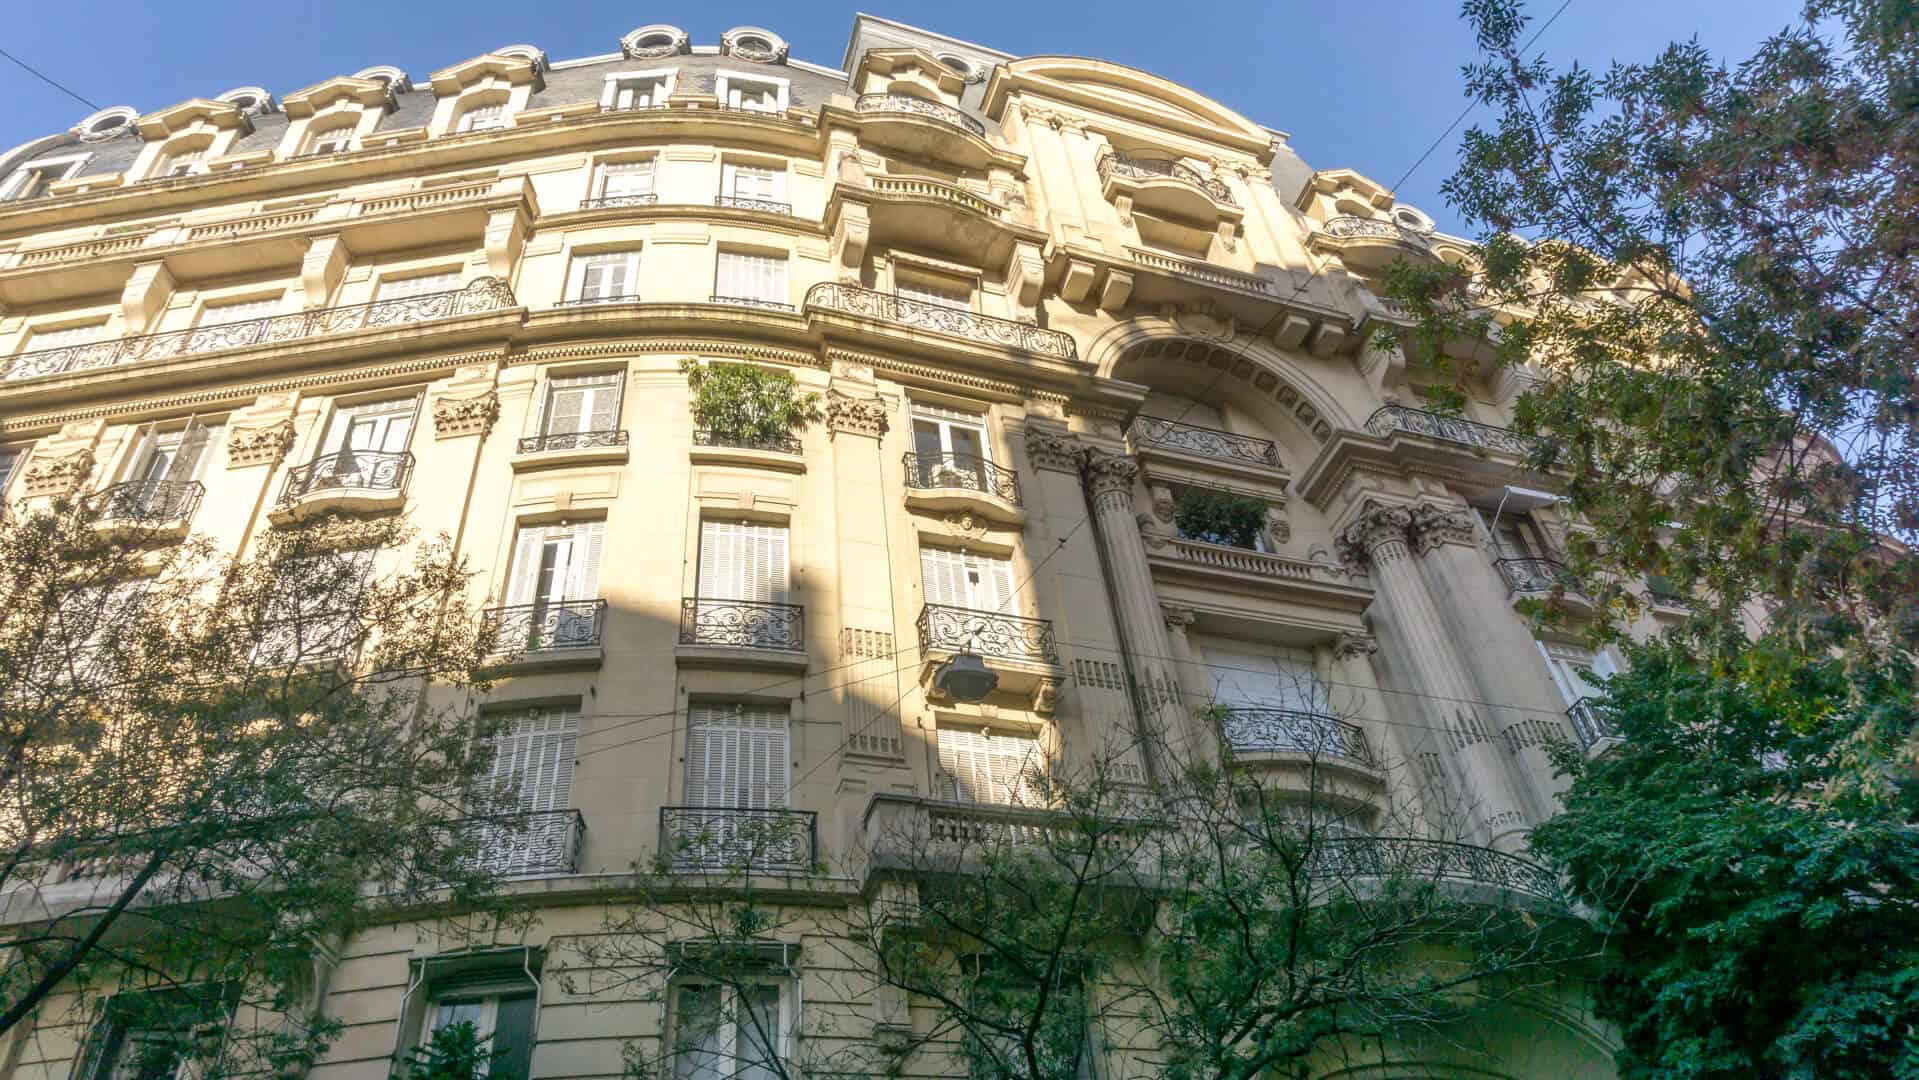 A french style building in Recoleta, Buenos area